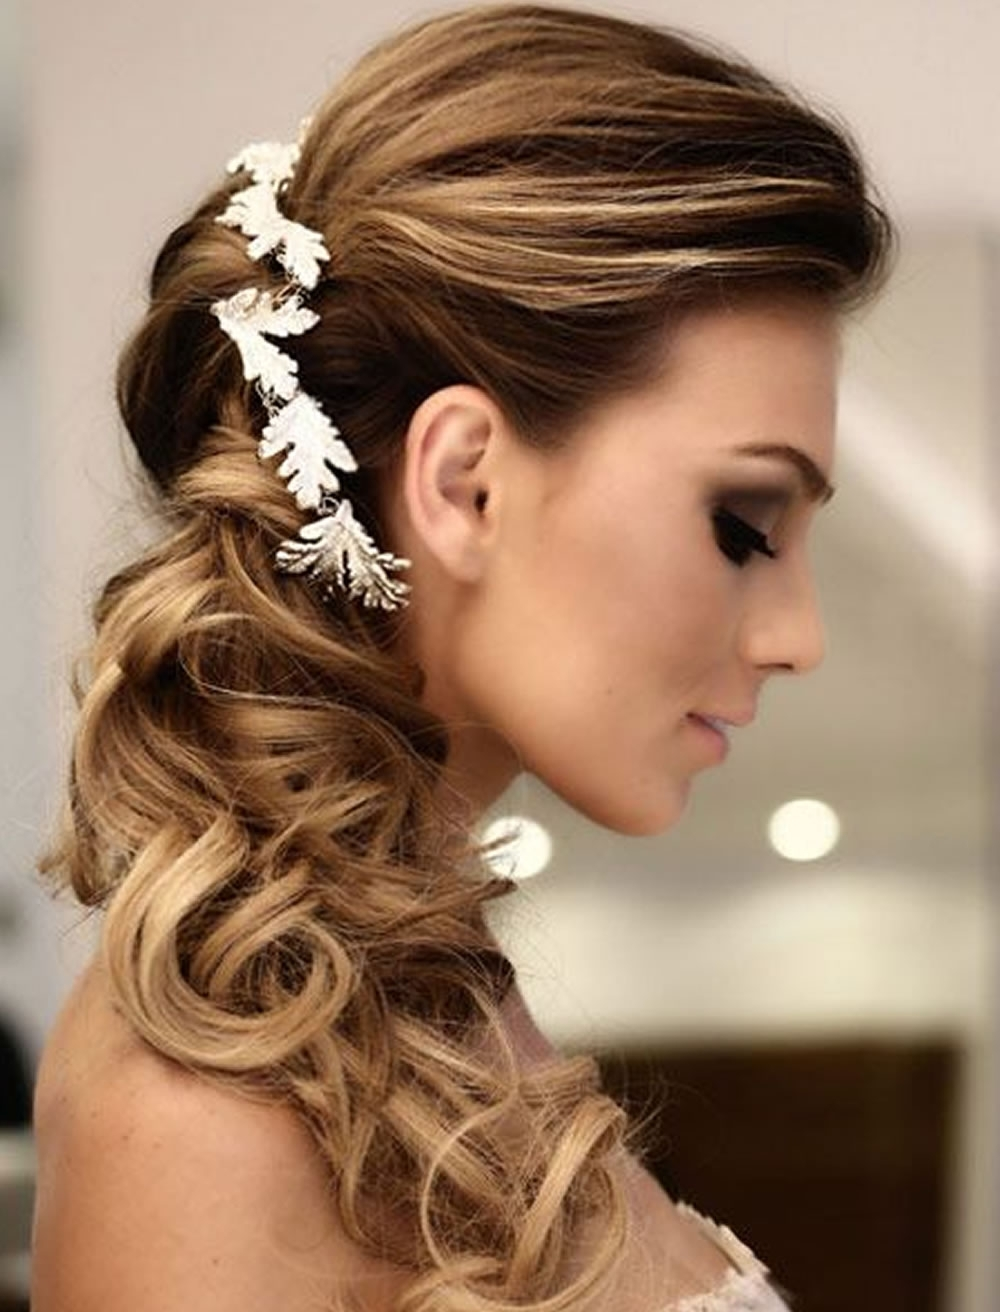 Very Stylish Wedding Hairstyles For Long Hair 2018 2019 – Hairstyles With Regard To Famous Long Wedding Hairstyles (View 13 of 15)